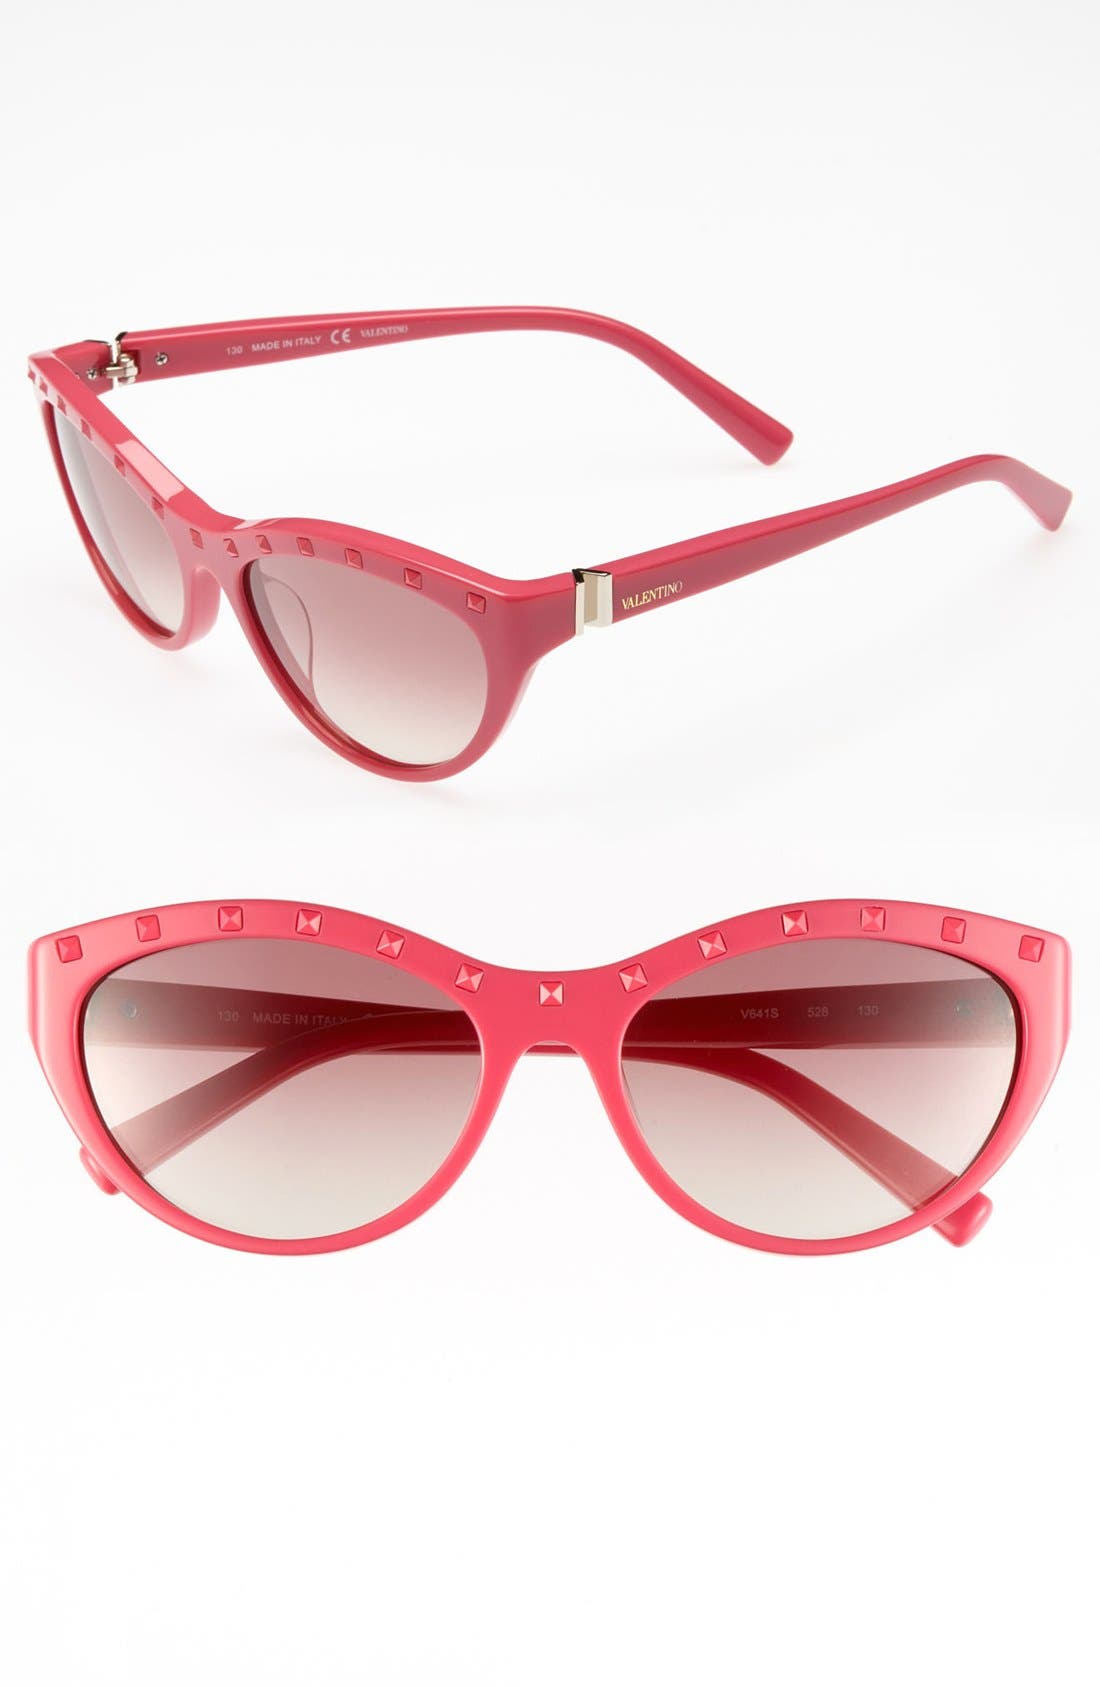 Alternate Image 1 Selected - Valentino 'Rockstud' 54mm Cat Eye Sunglasses